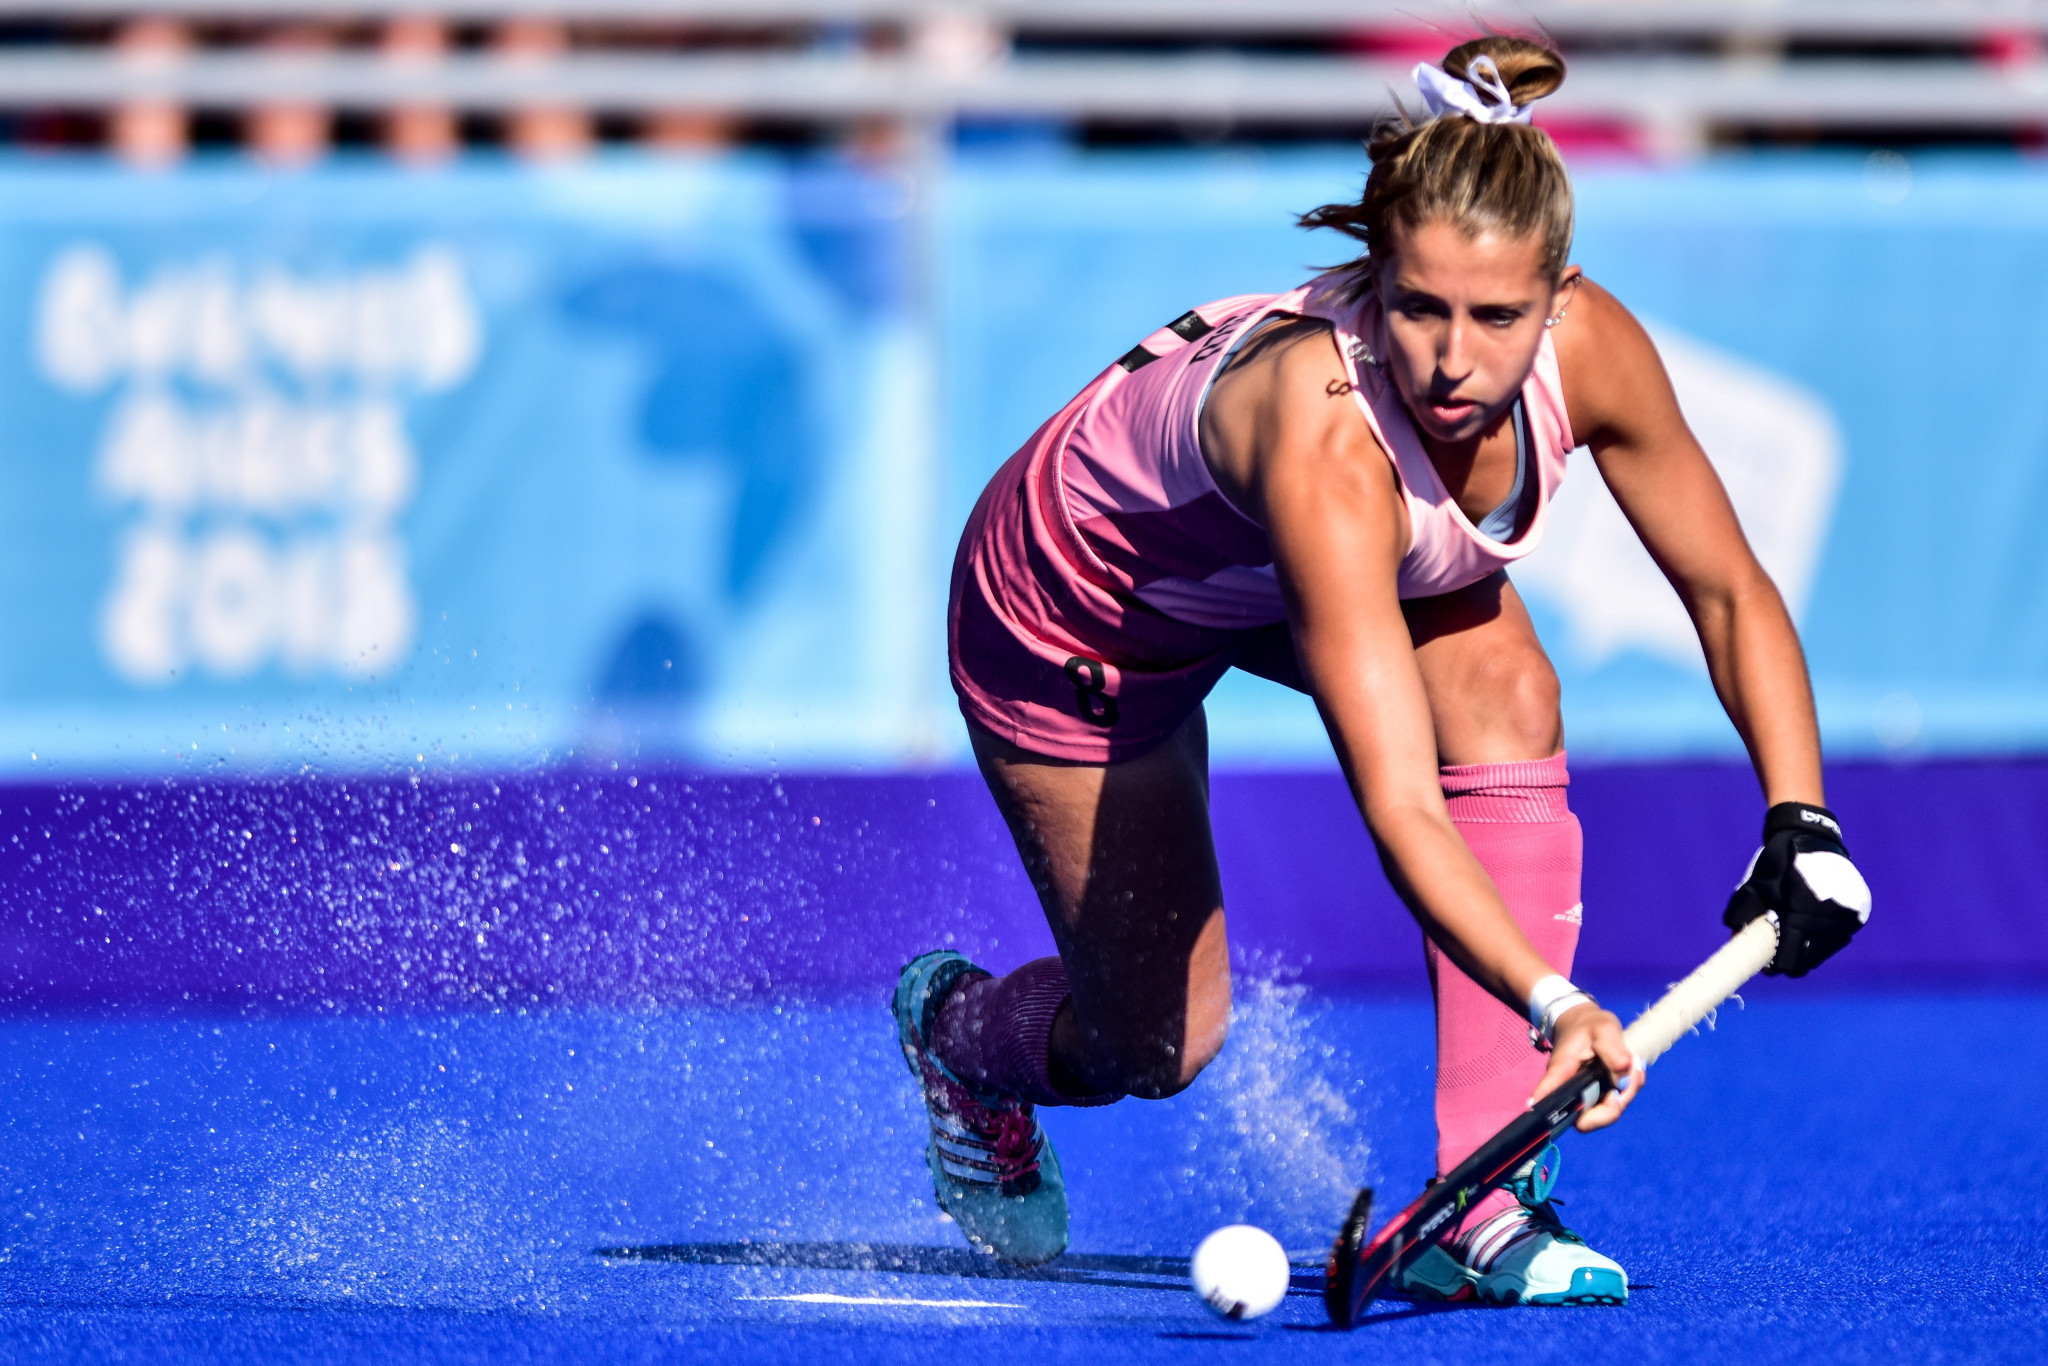 Hockey 5s featured on the programme of the Singapore 2014 and Buenos Aires 2018 Youth Olympic Games ©Getty Images